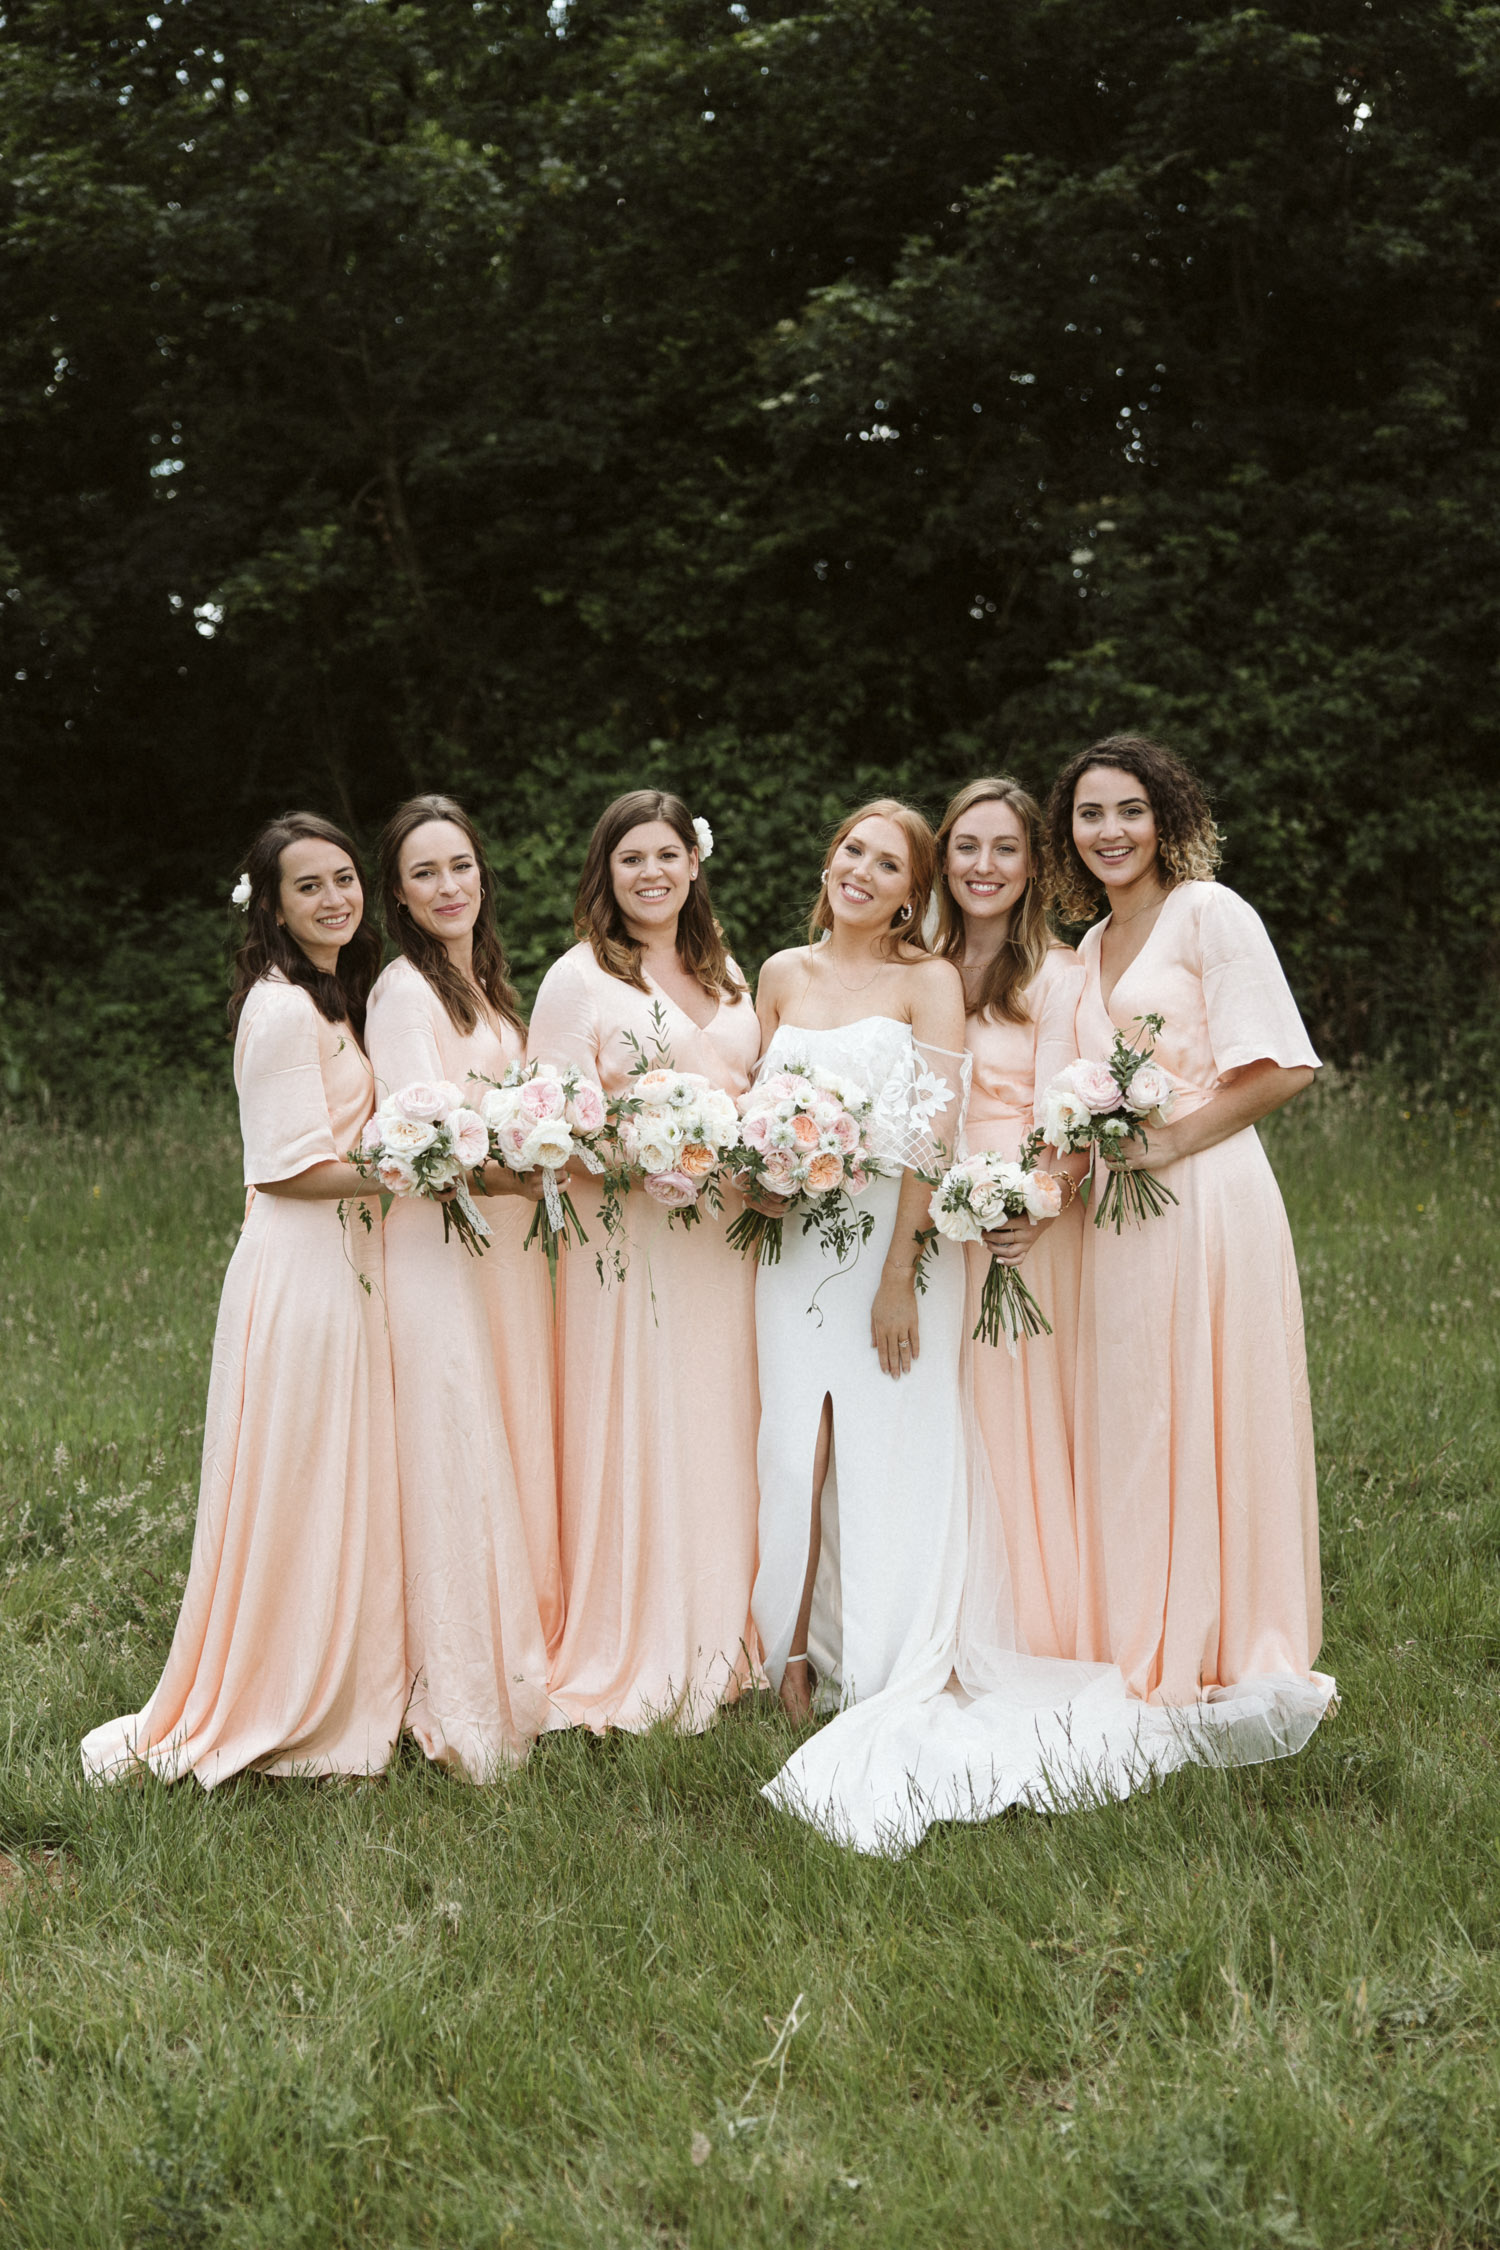 a portrait of the bride and bridesmaids